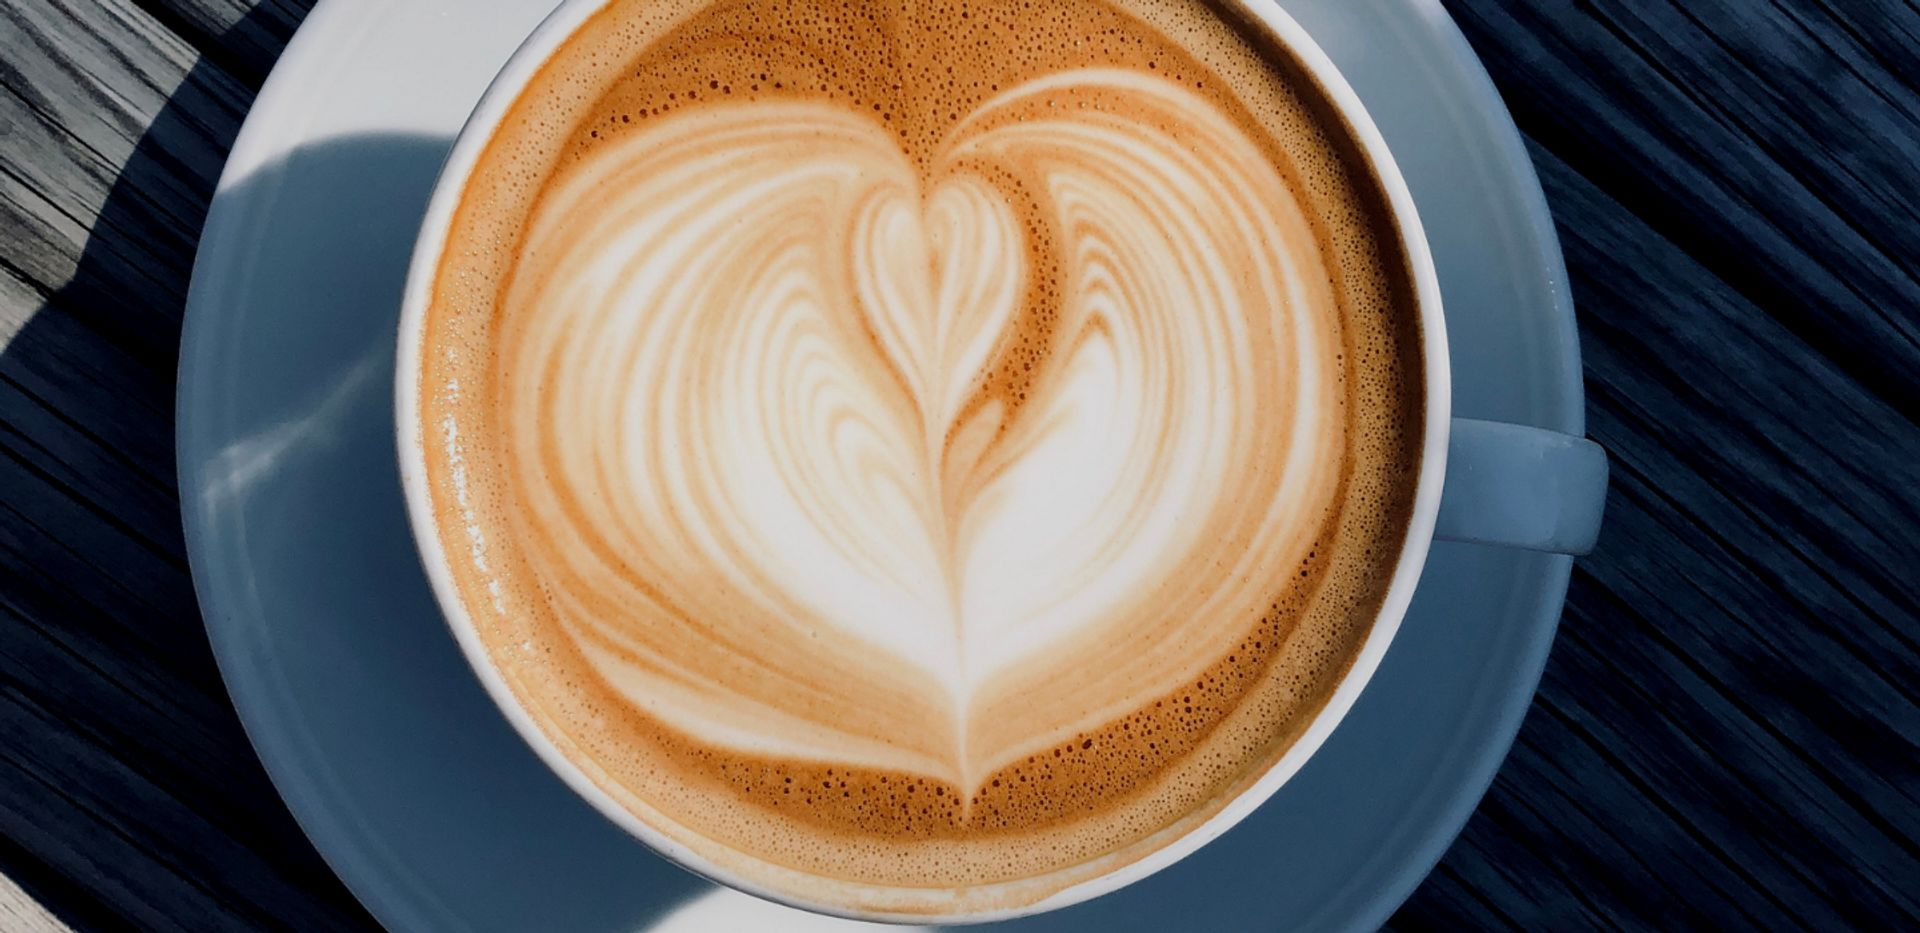 Close-up of a cup of latte.